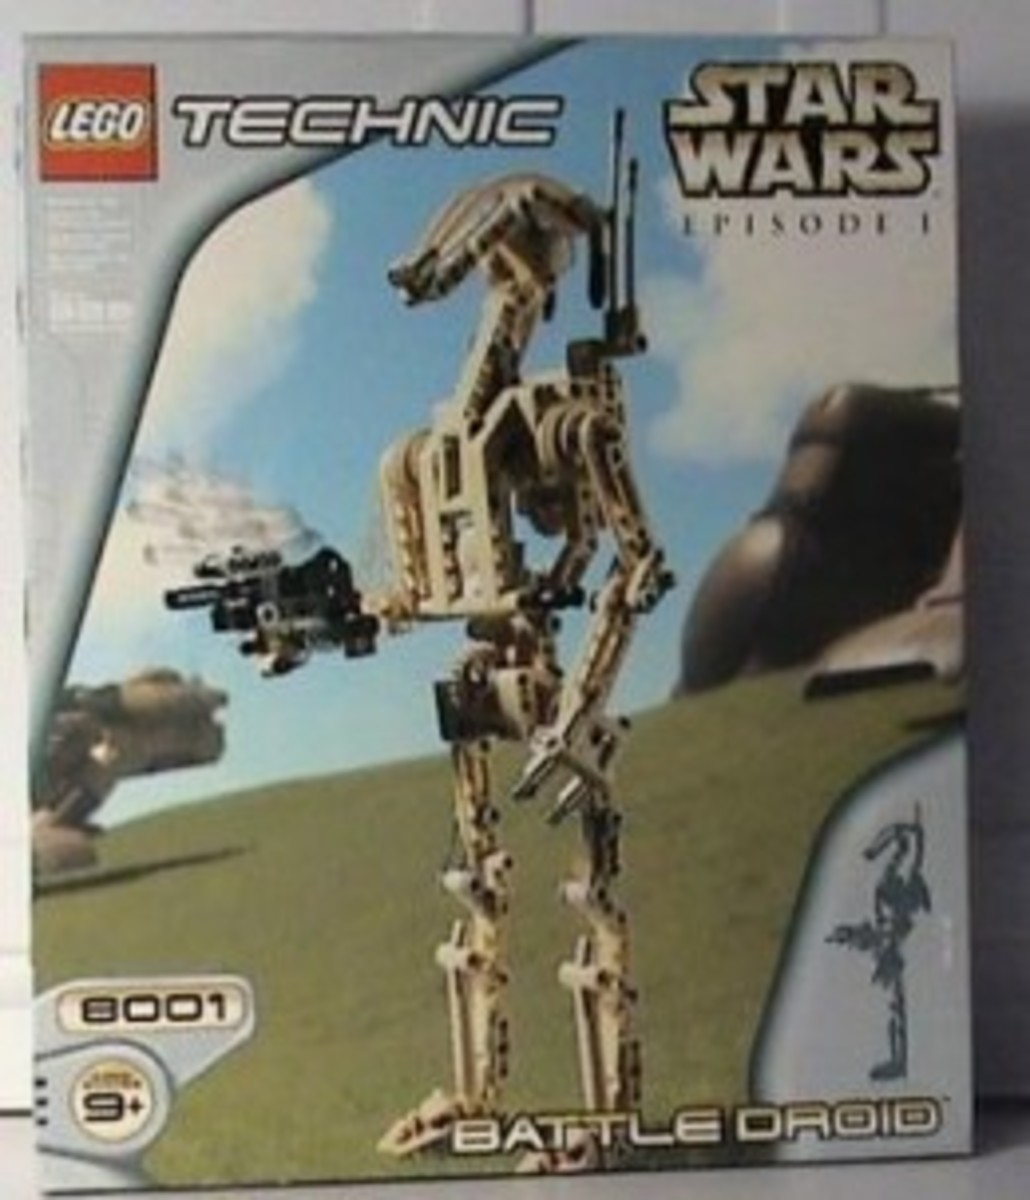 Lego Star Wars Battle Droid 8001 Box